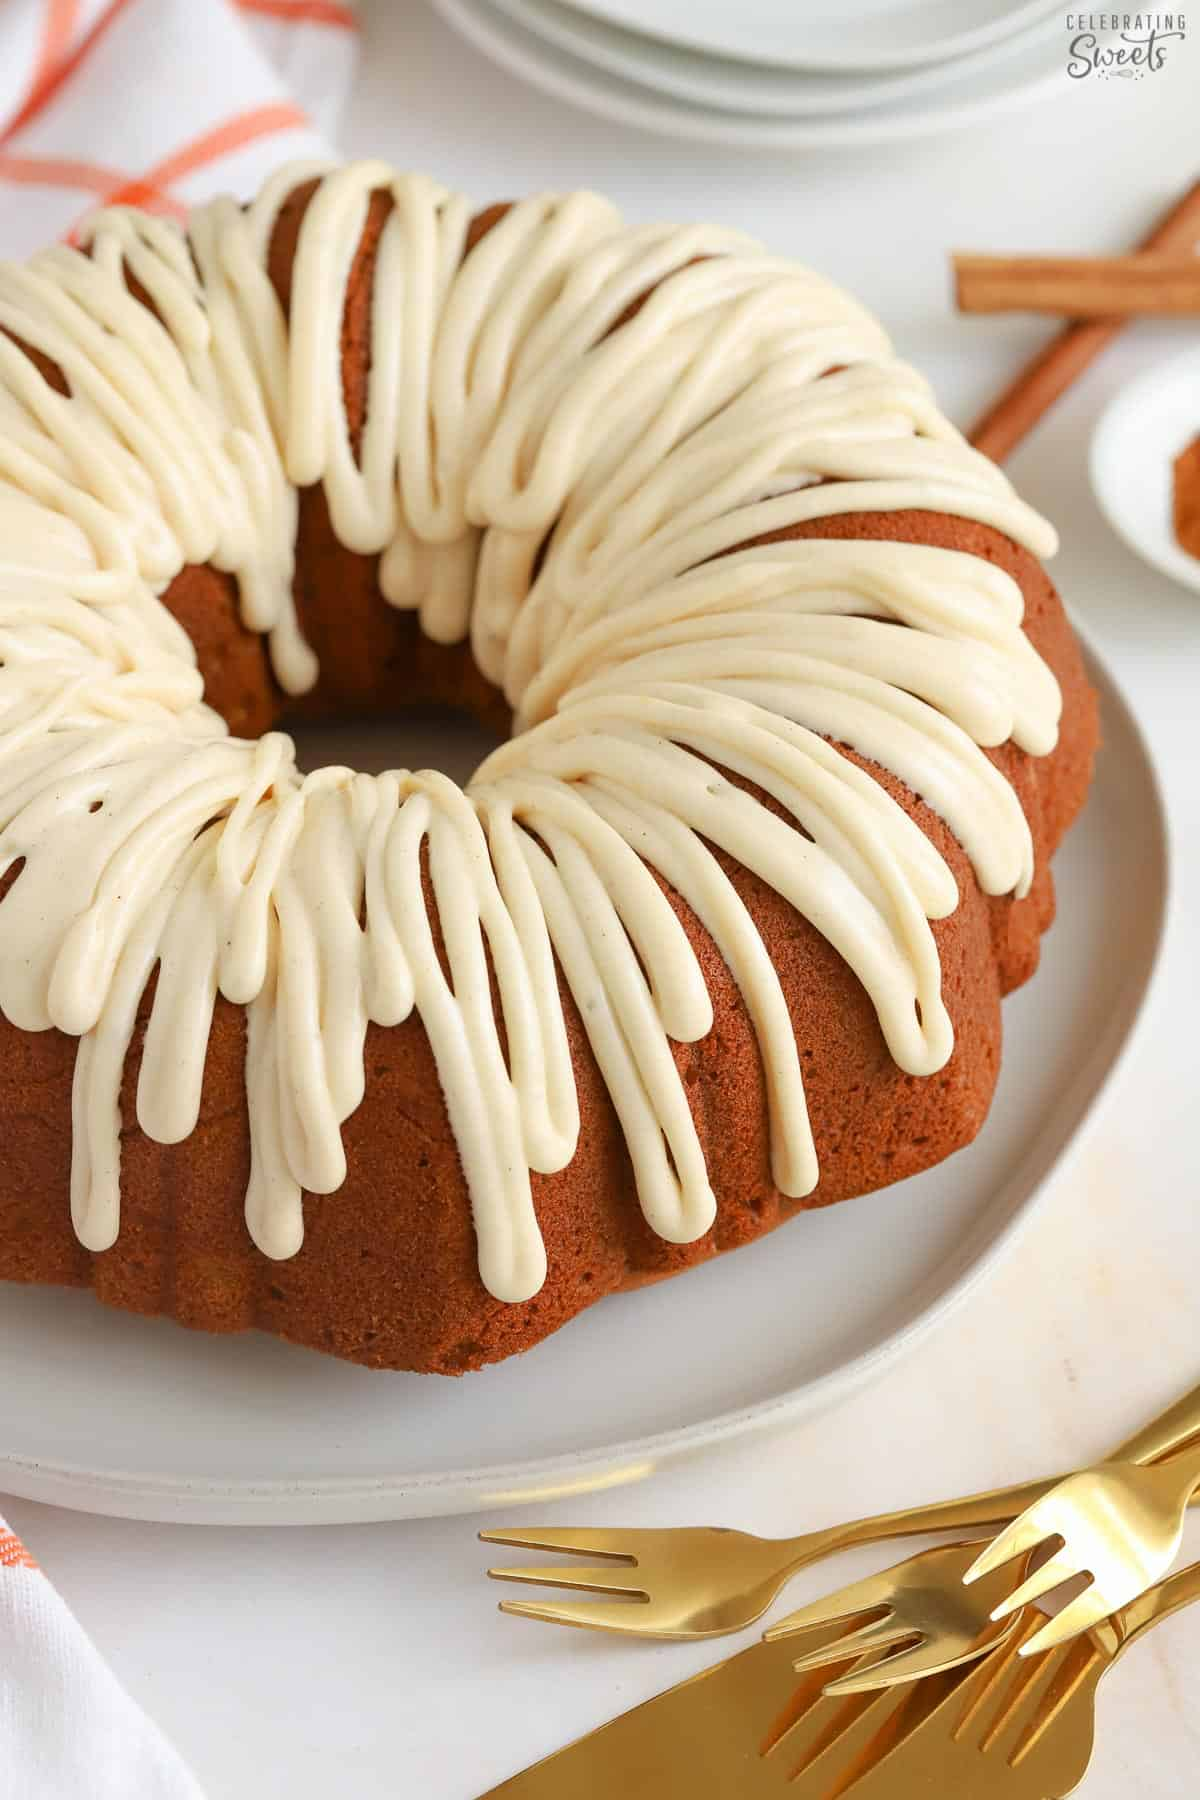 Pumpkin bundt cake drizzled with white icing sitting on a white plate next to gold forks.